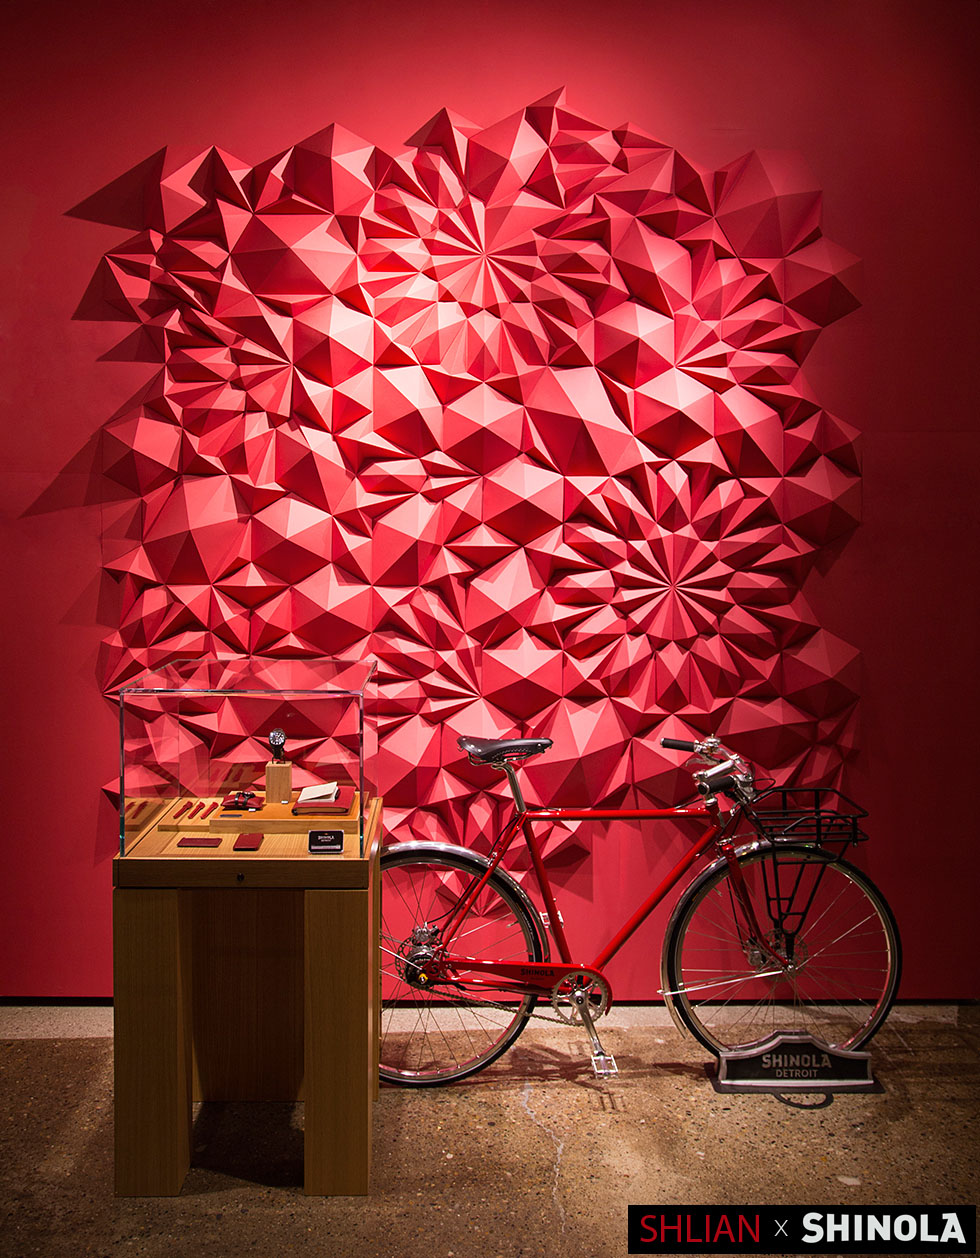 Exhibit for Shinola, Paper ,132 x 132 x 4 inches. 2013. By Matthew Shlian